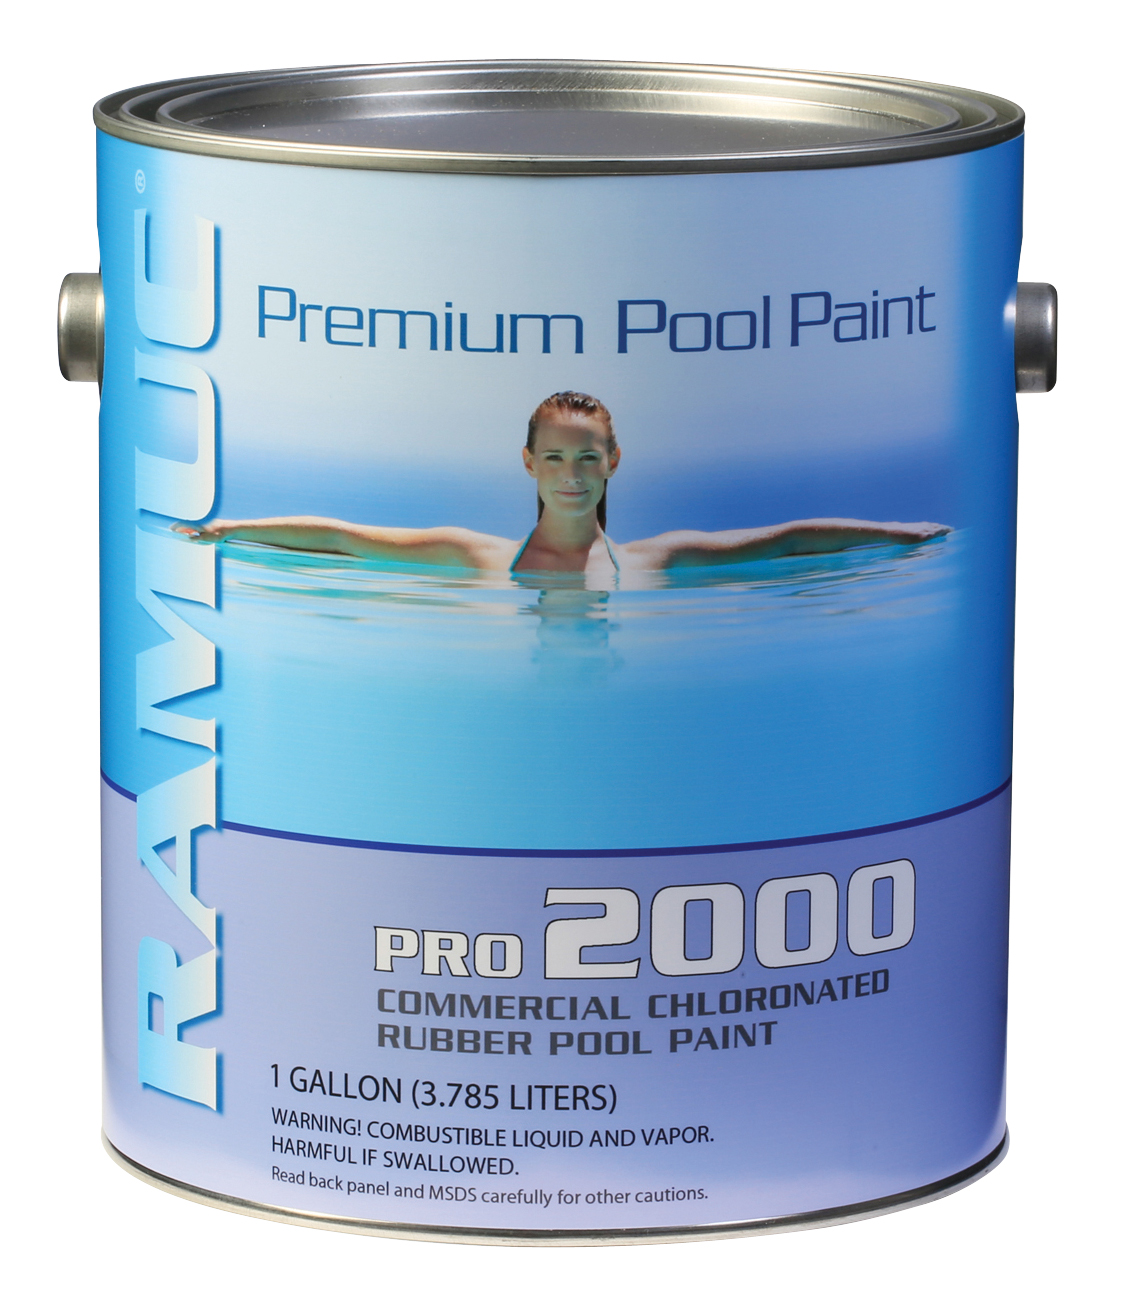 Pro 2000 Chlorinated Rubber Competitively Priced And